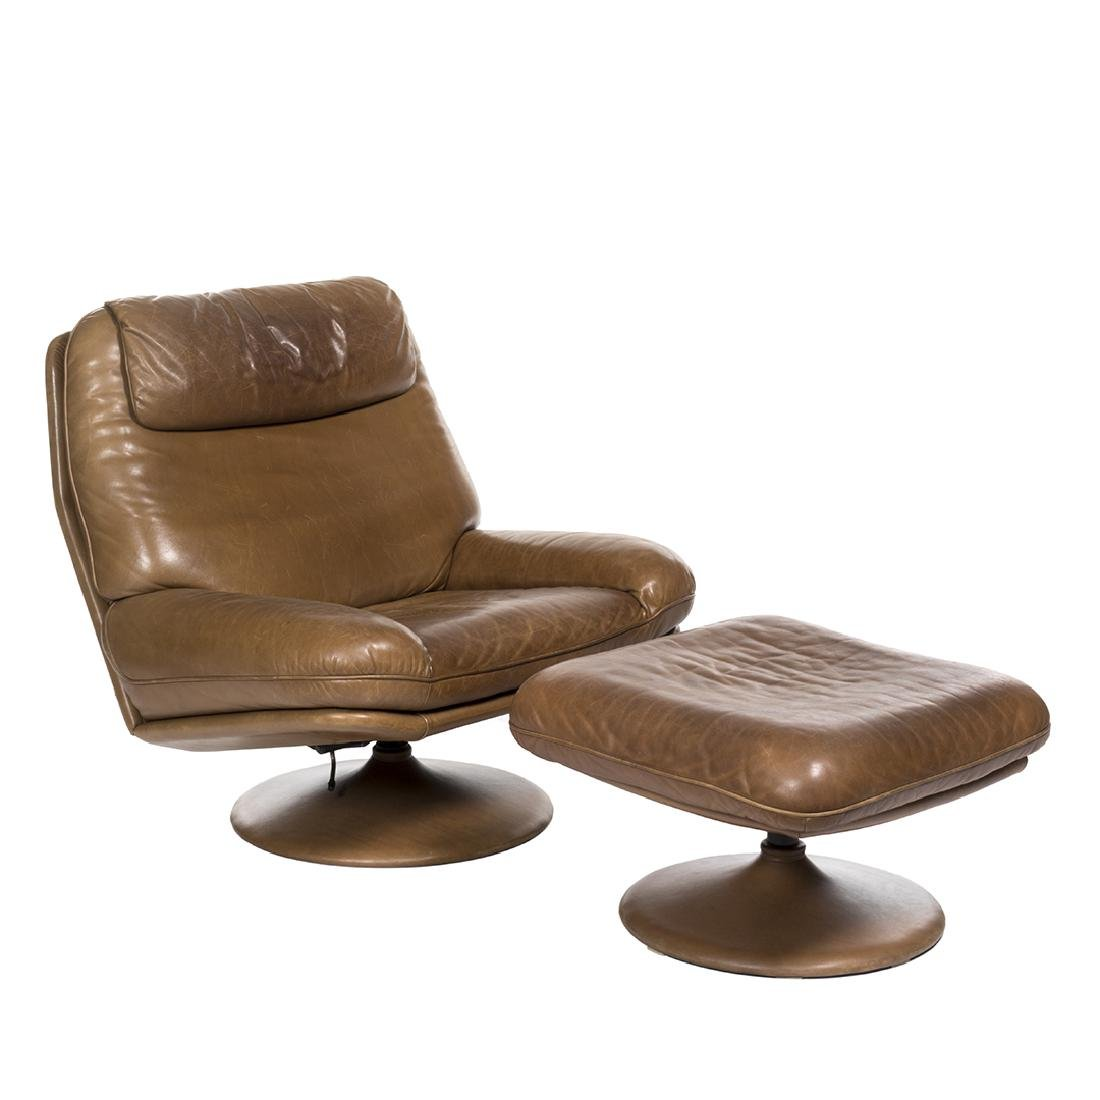 de Sede Lounge Chair and Ottoman